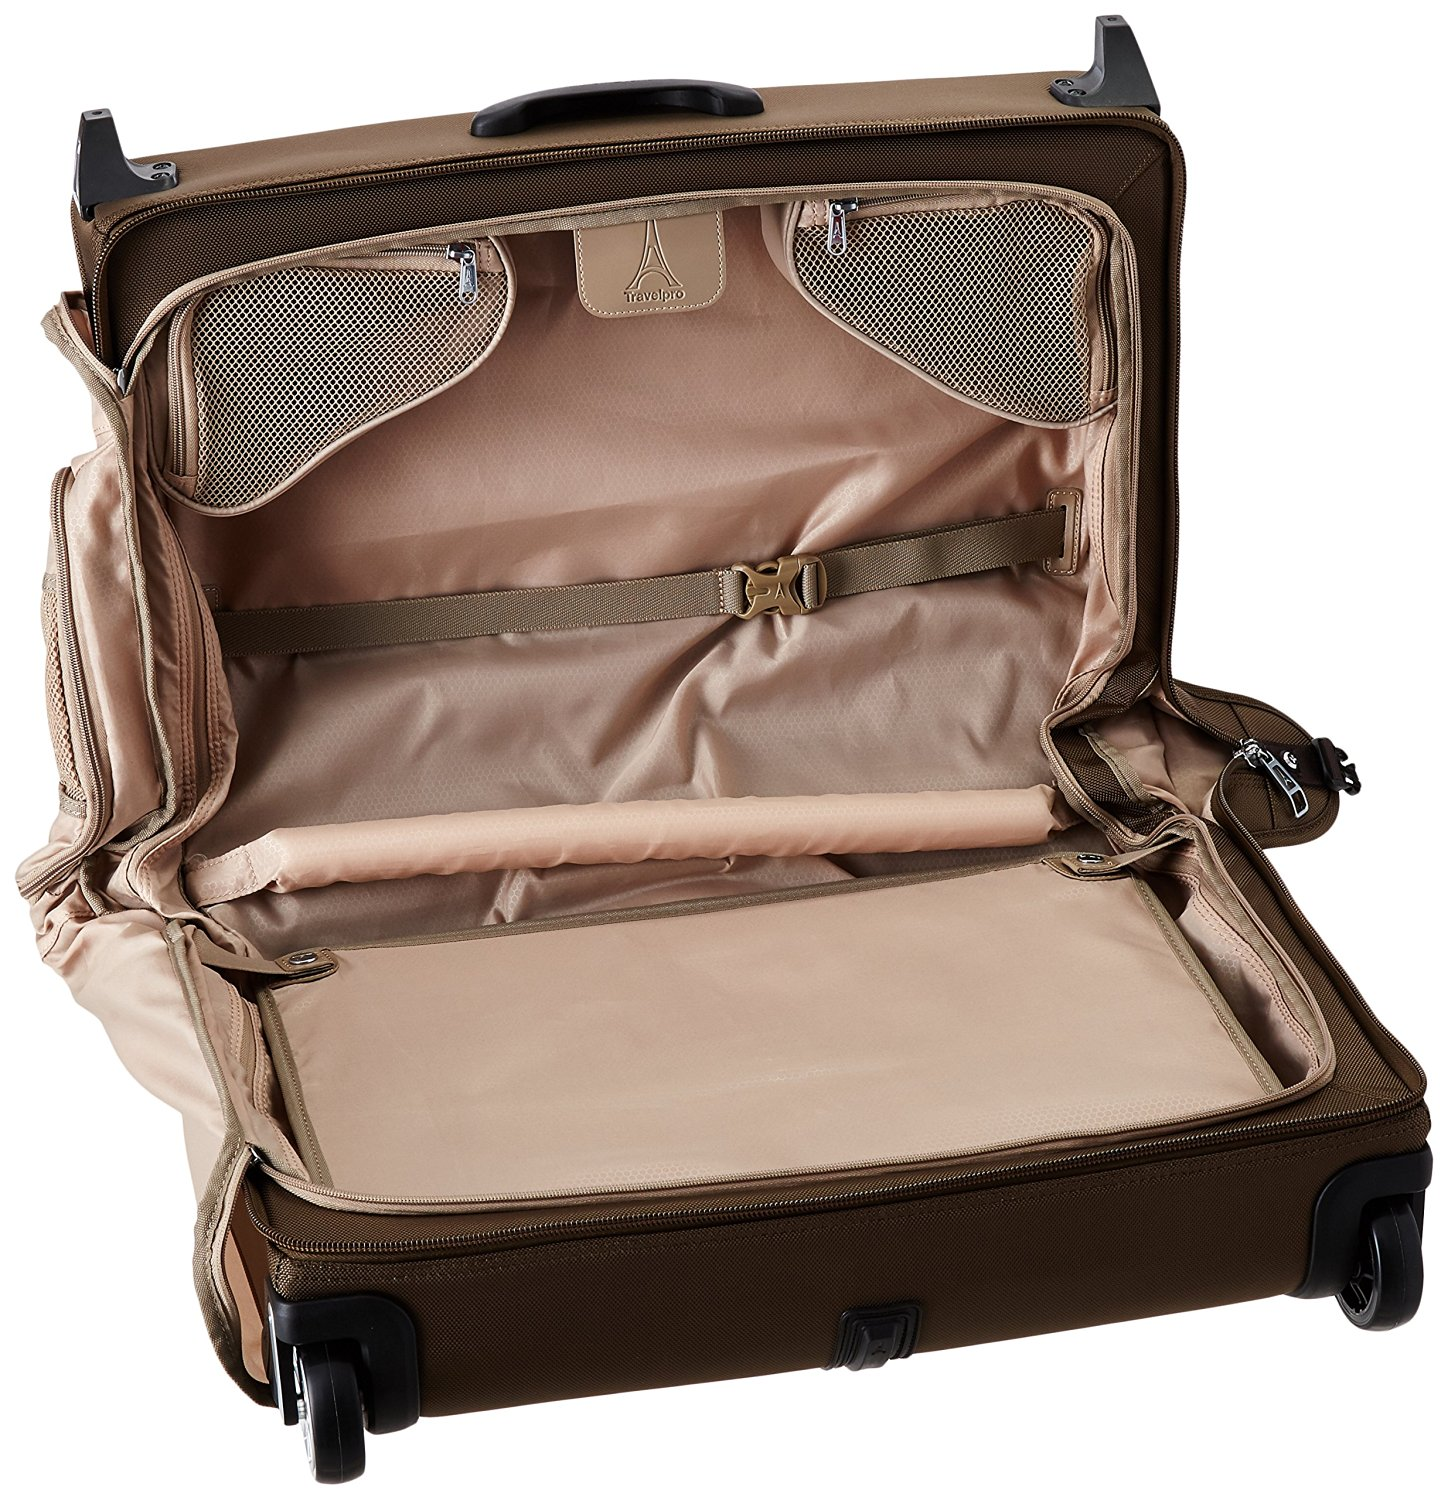 Travelpro Platinum Magna 2 22 Inch Carry On Rolling